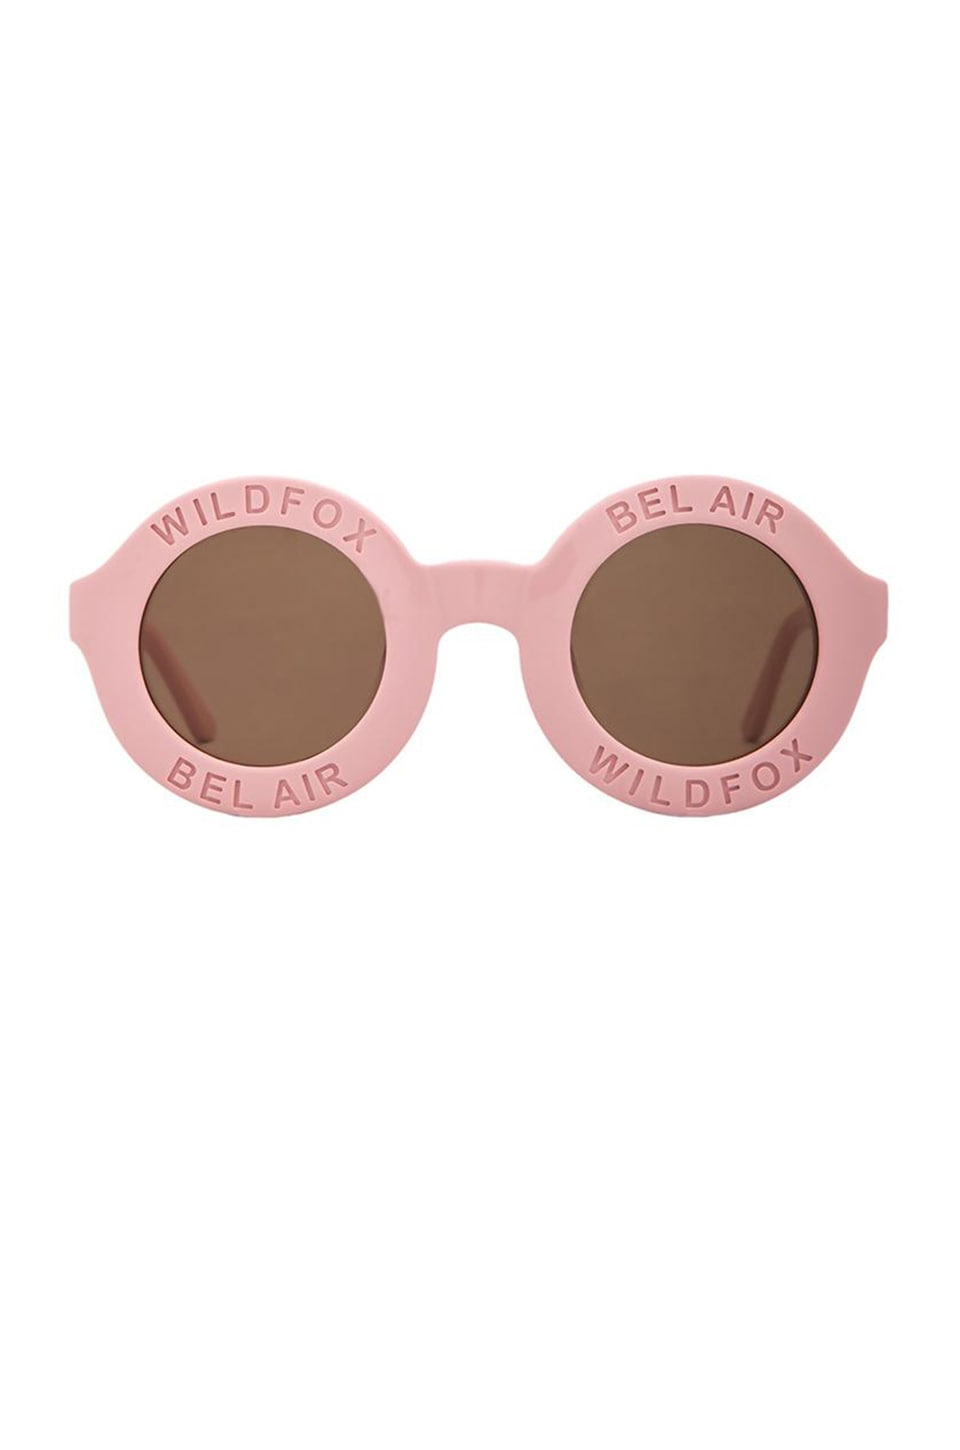 Wildfox Couture Bel Air Sunglasses in Pink & Brown